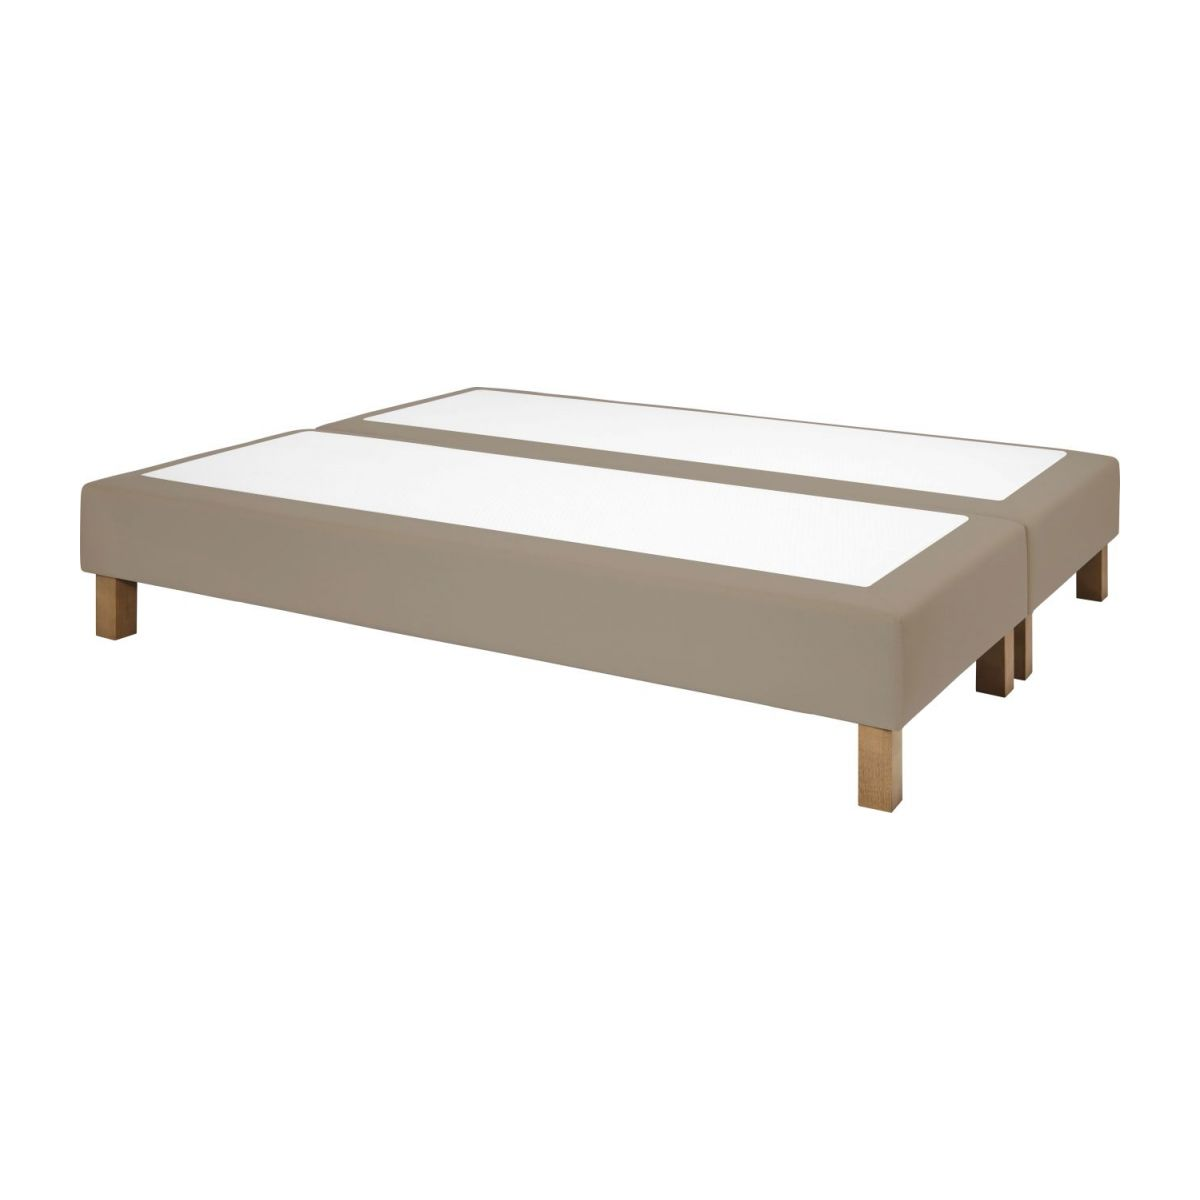 Slatted divan 2x80x200cm in fabric, light beige n°1